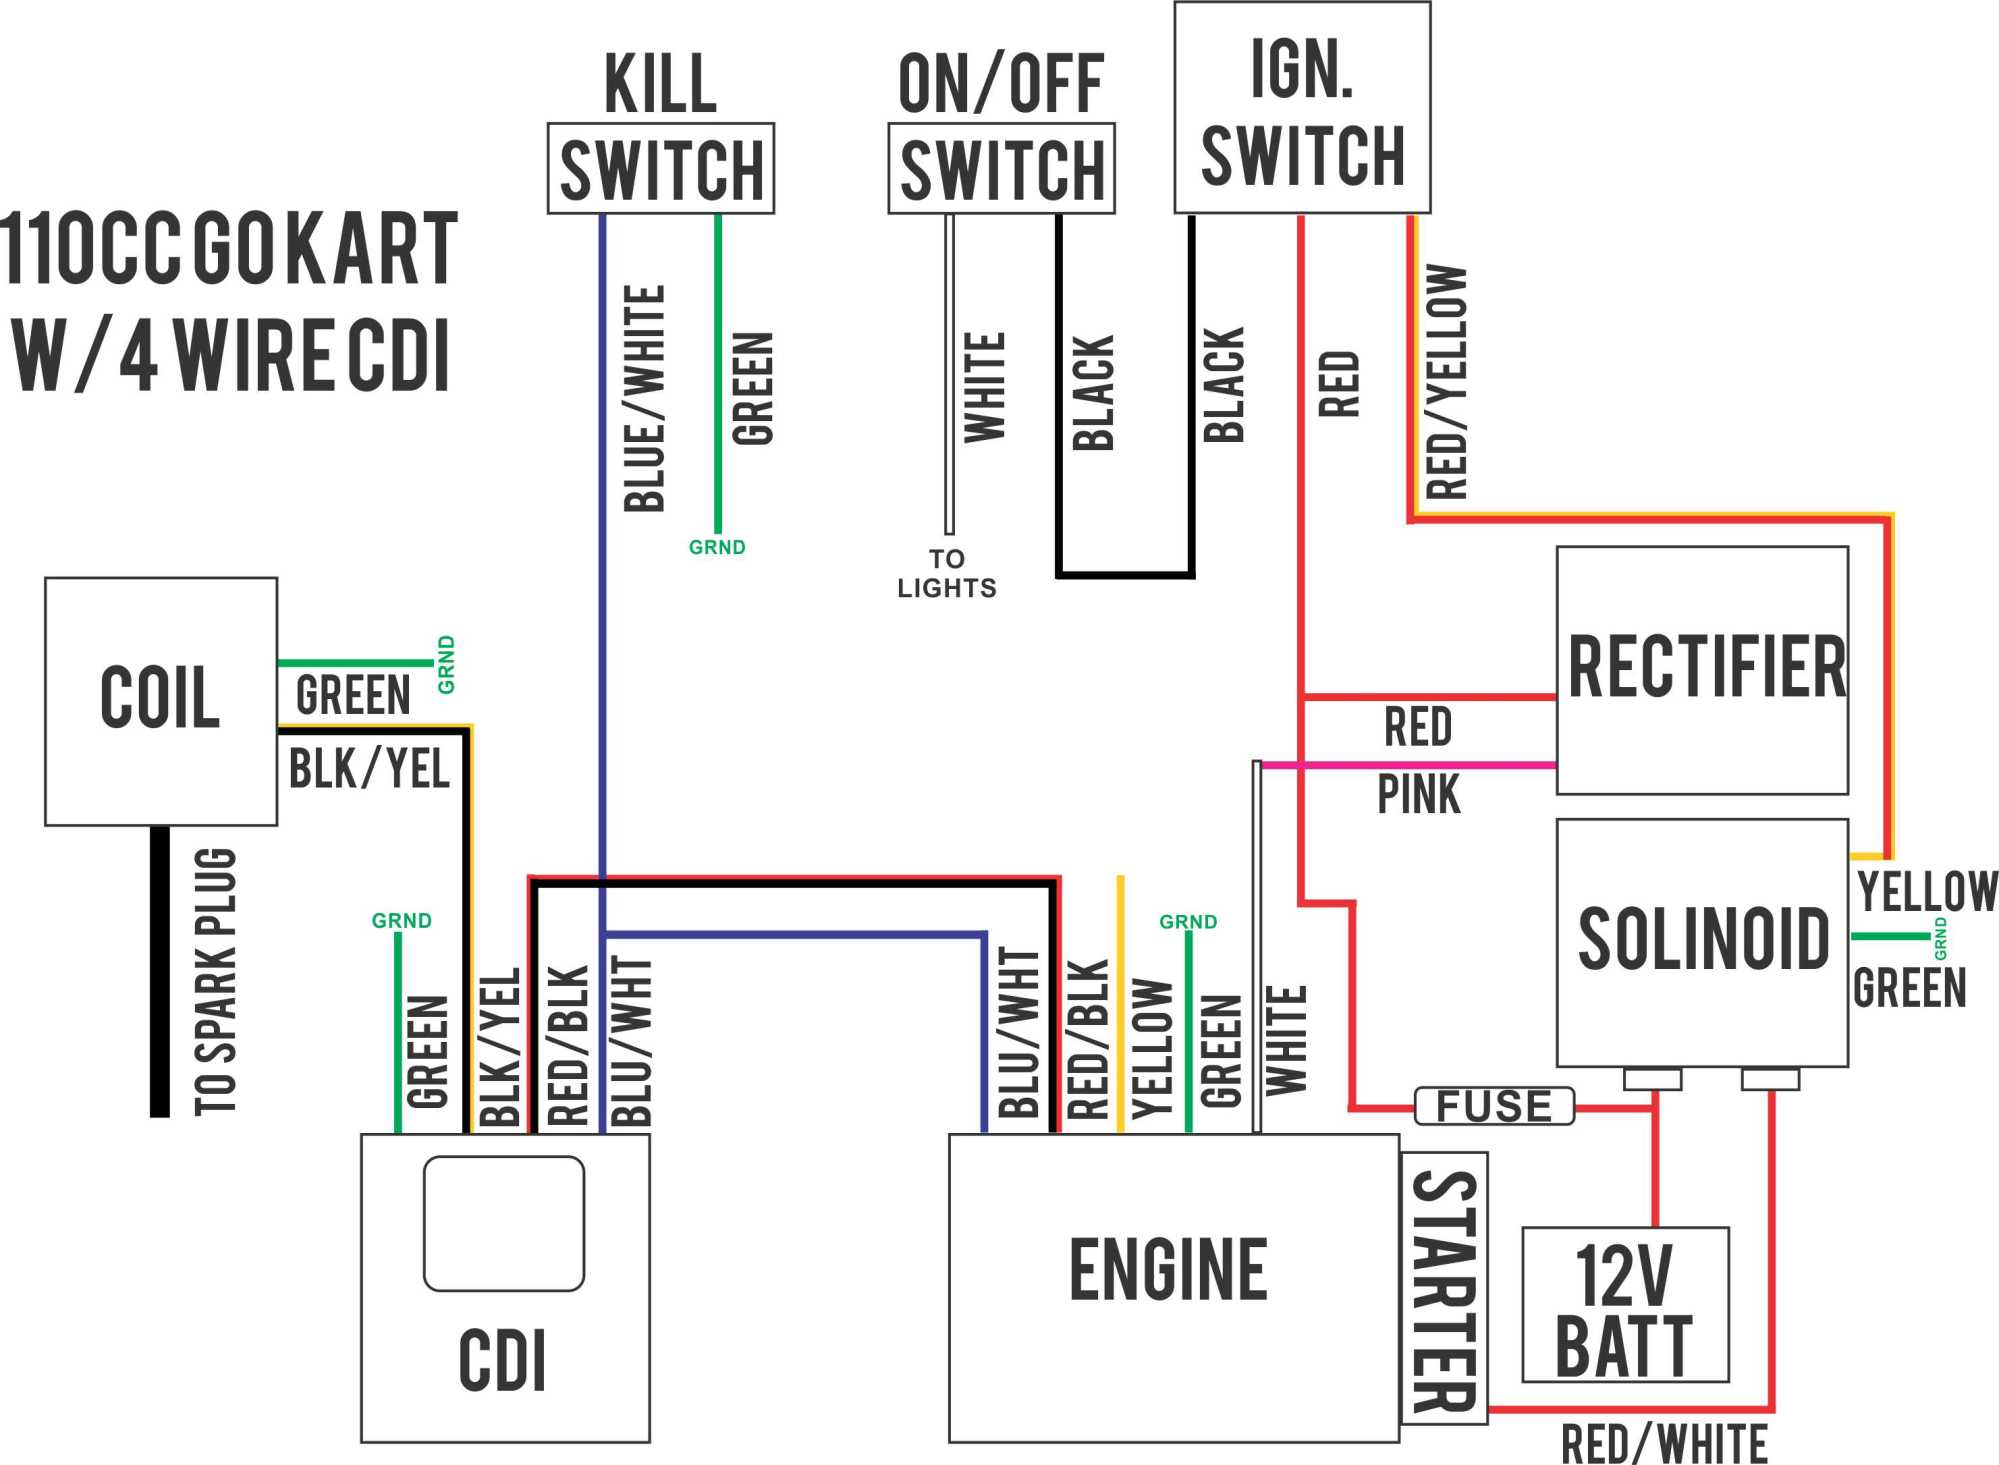 hight resolution of baja 50cc key switch wiring diagram wiring diagram schematics rh ksefanzone com vvdi key tool wiring diagram key card switch wiring diagram